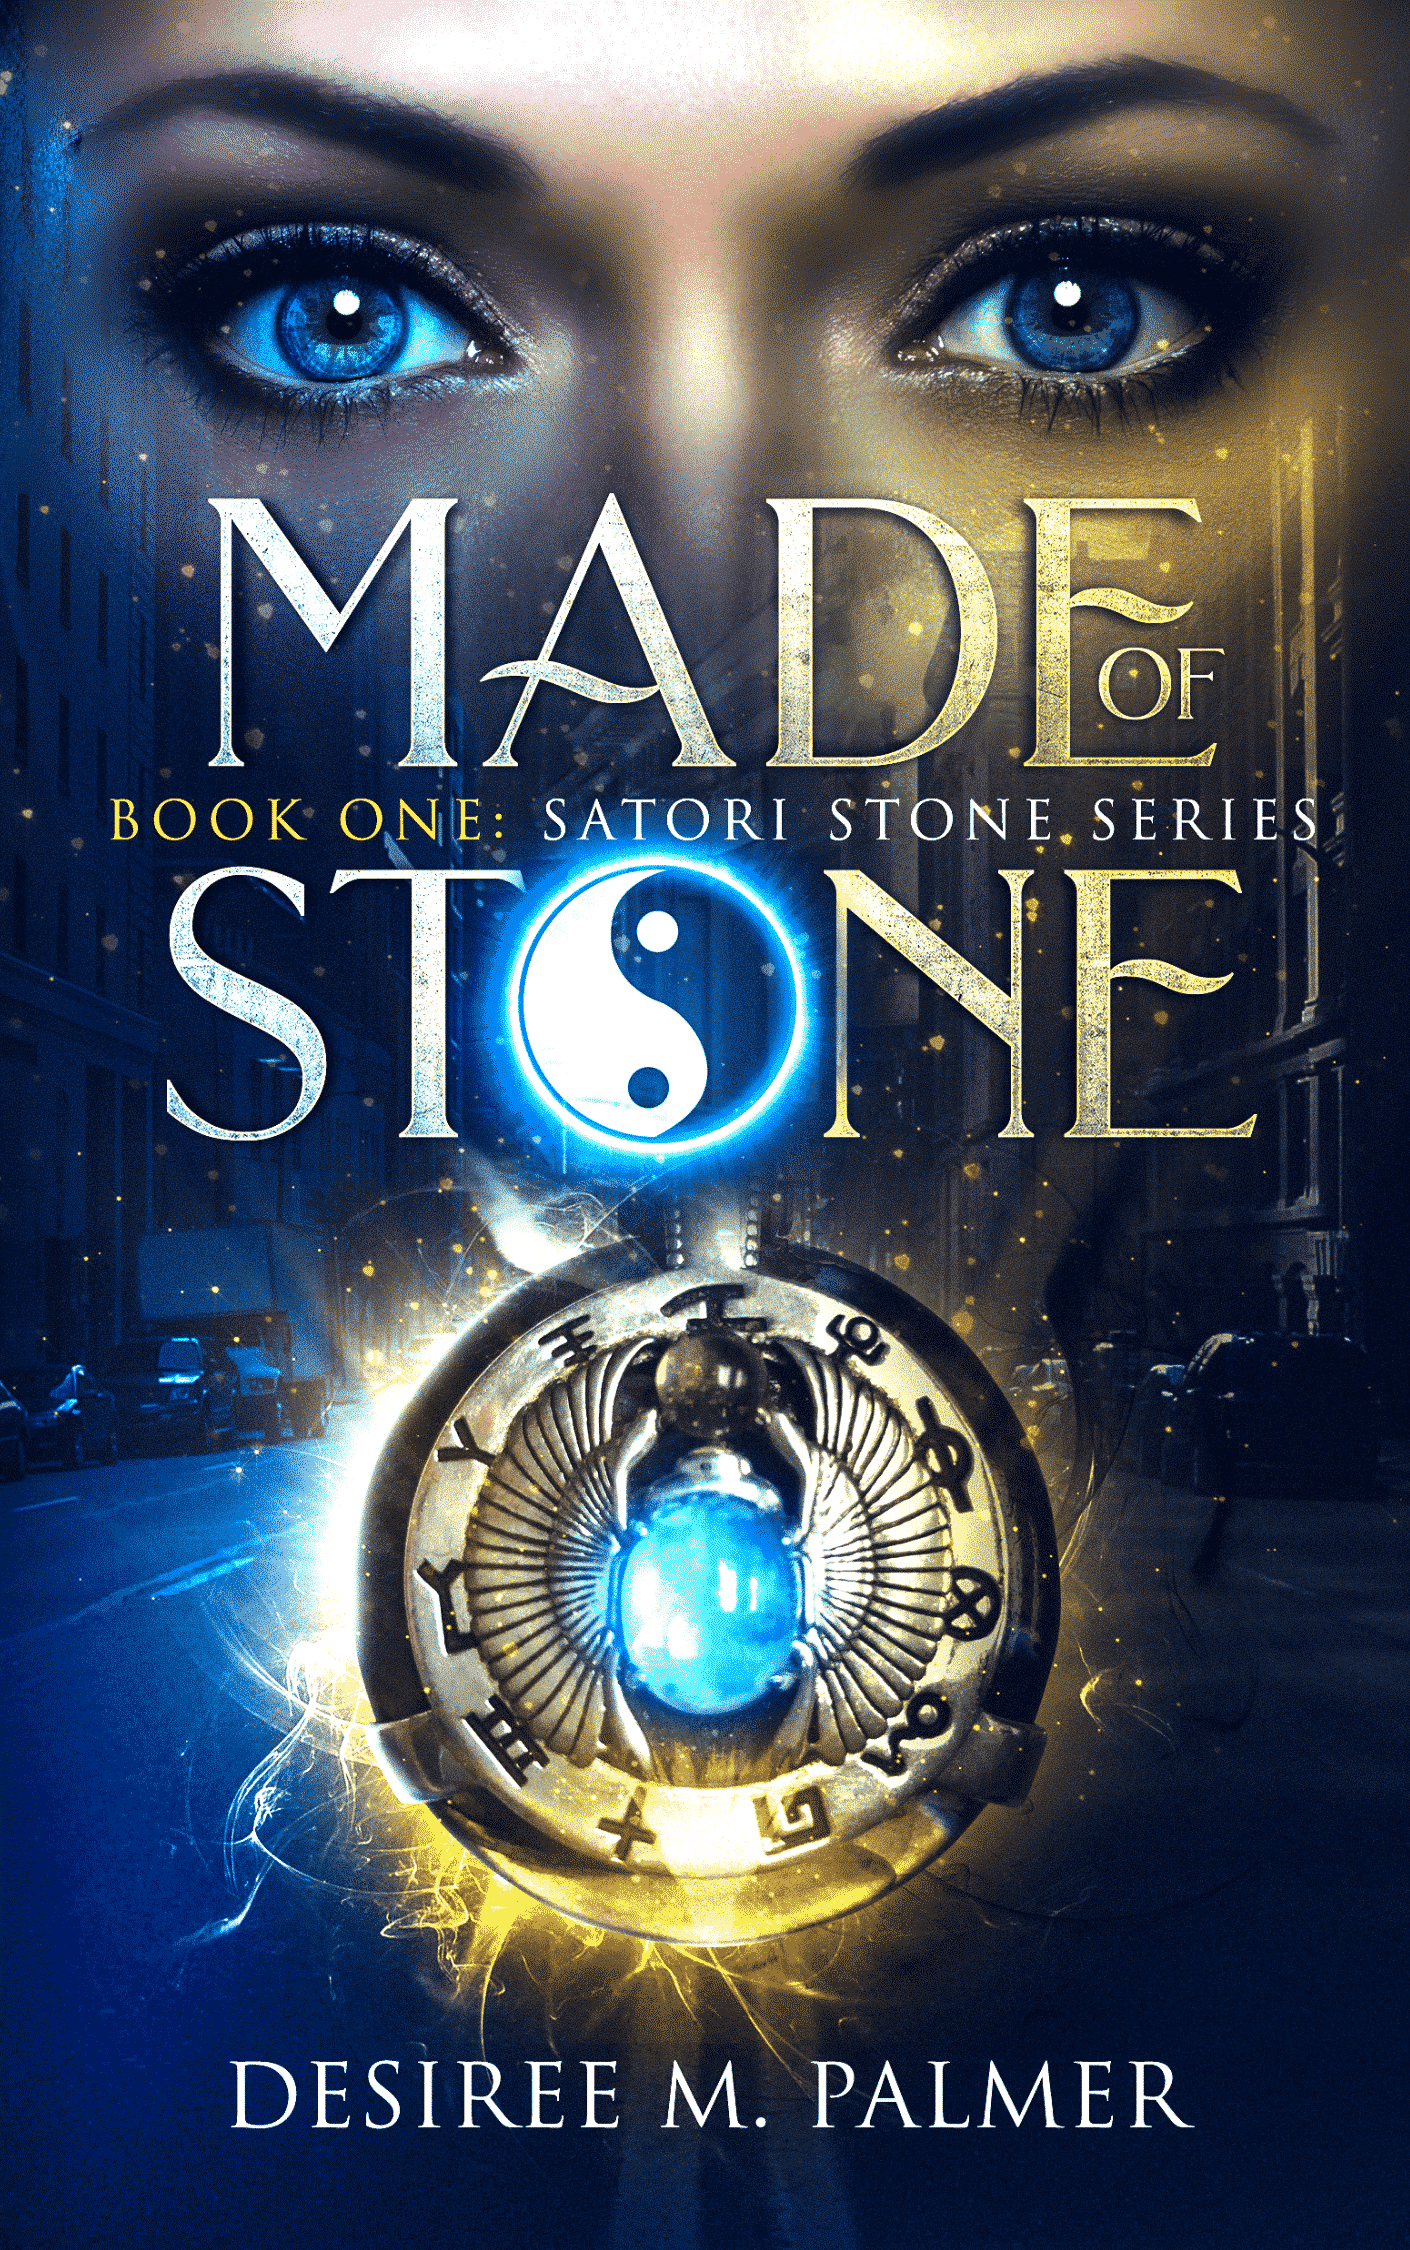 MADE OF STONE E BOOK COVER